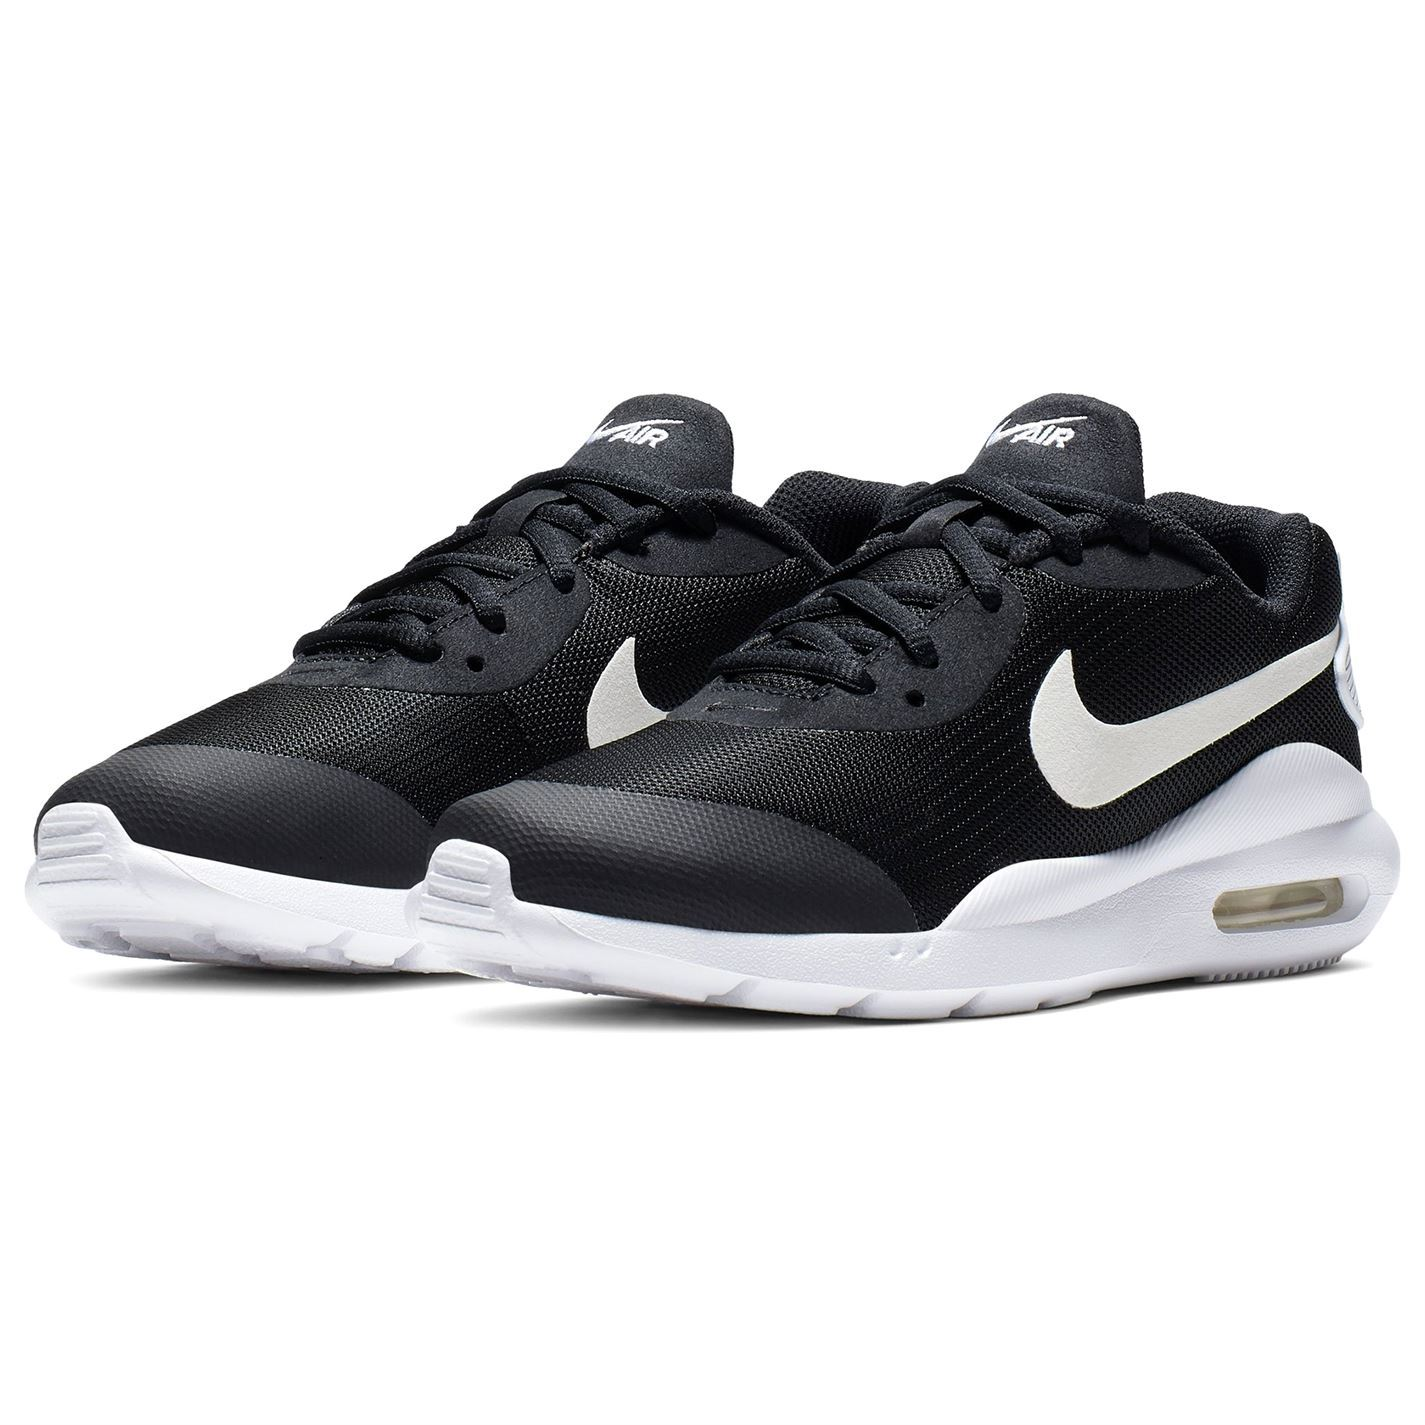 Details about Nike Air Max Oketo Trainers Juniors Boys Shoes Sneakers Kids Footwear